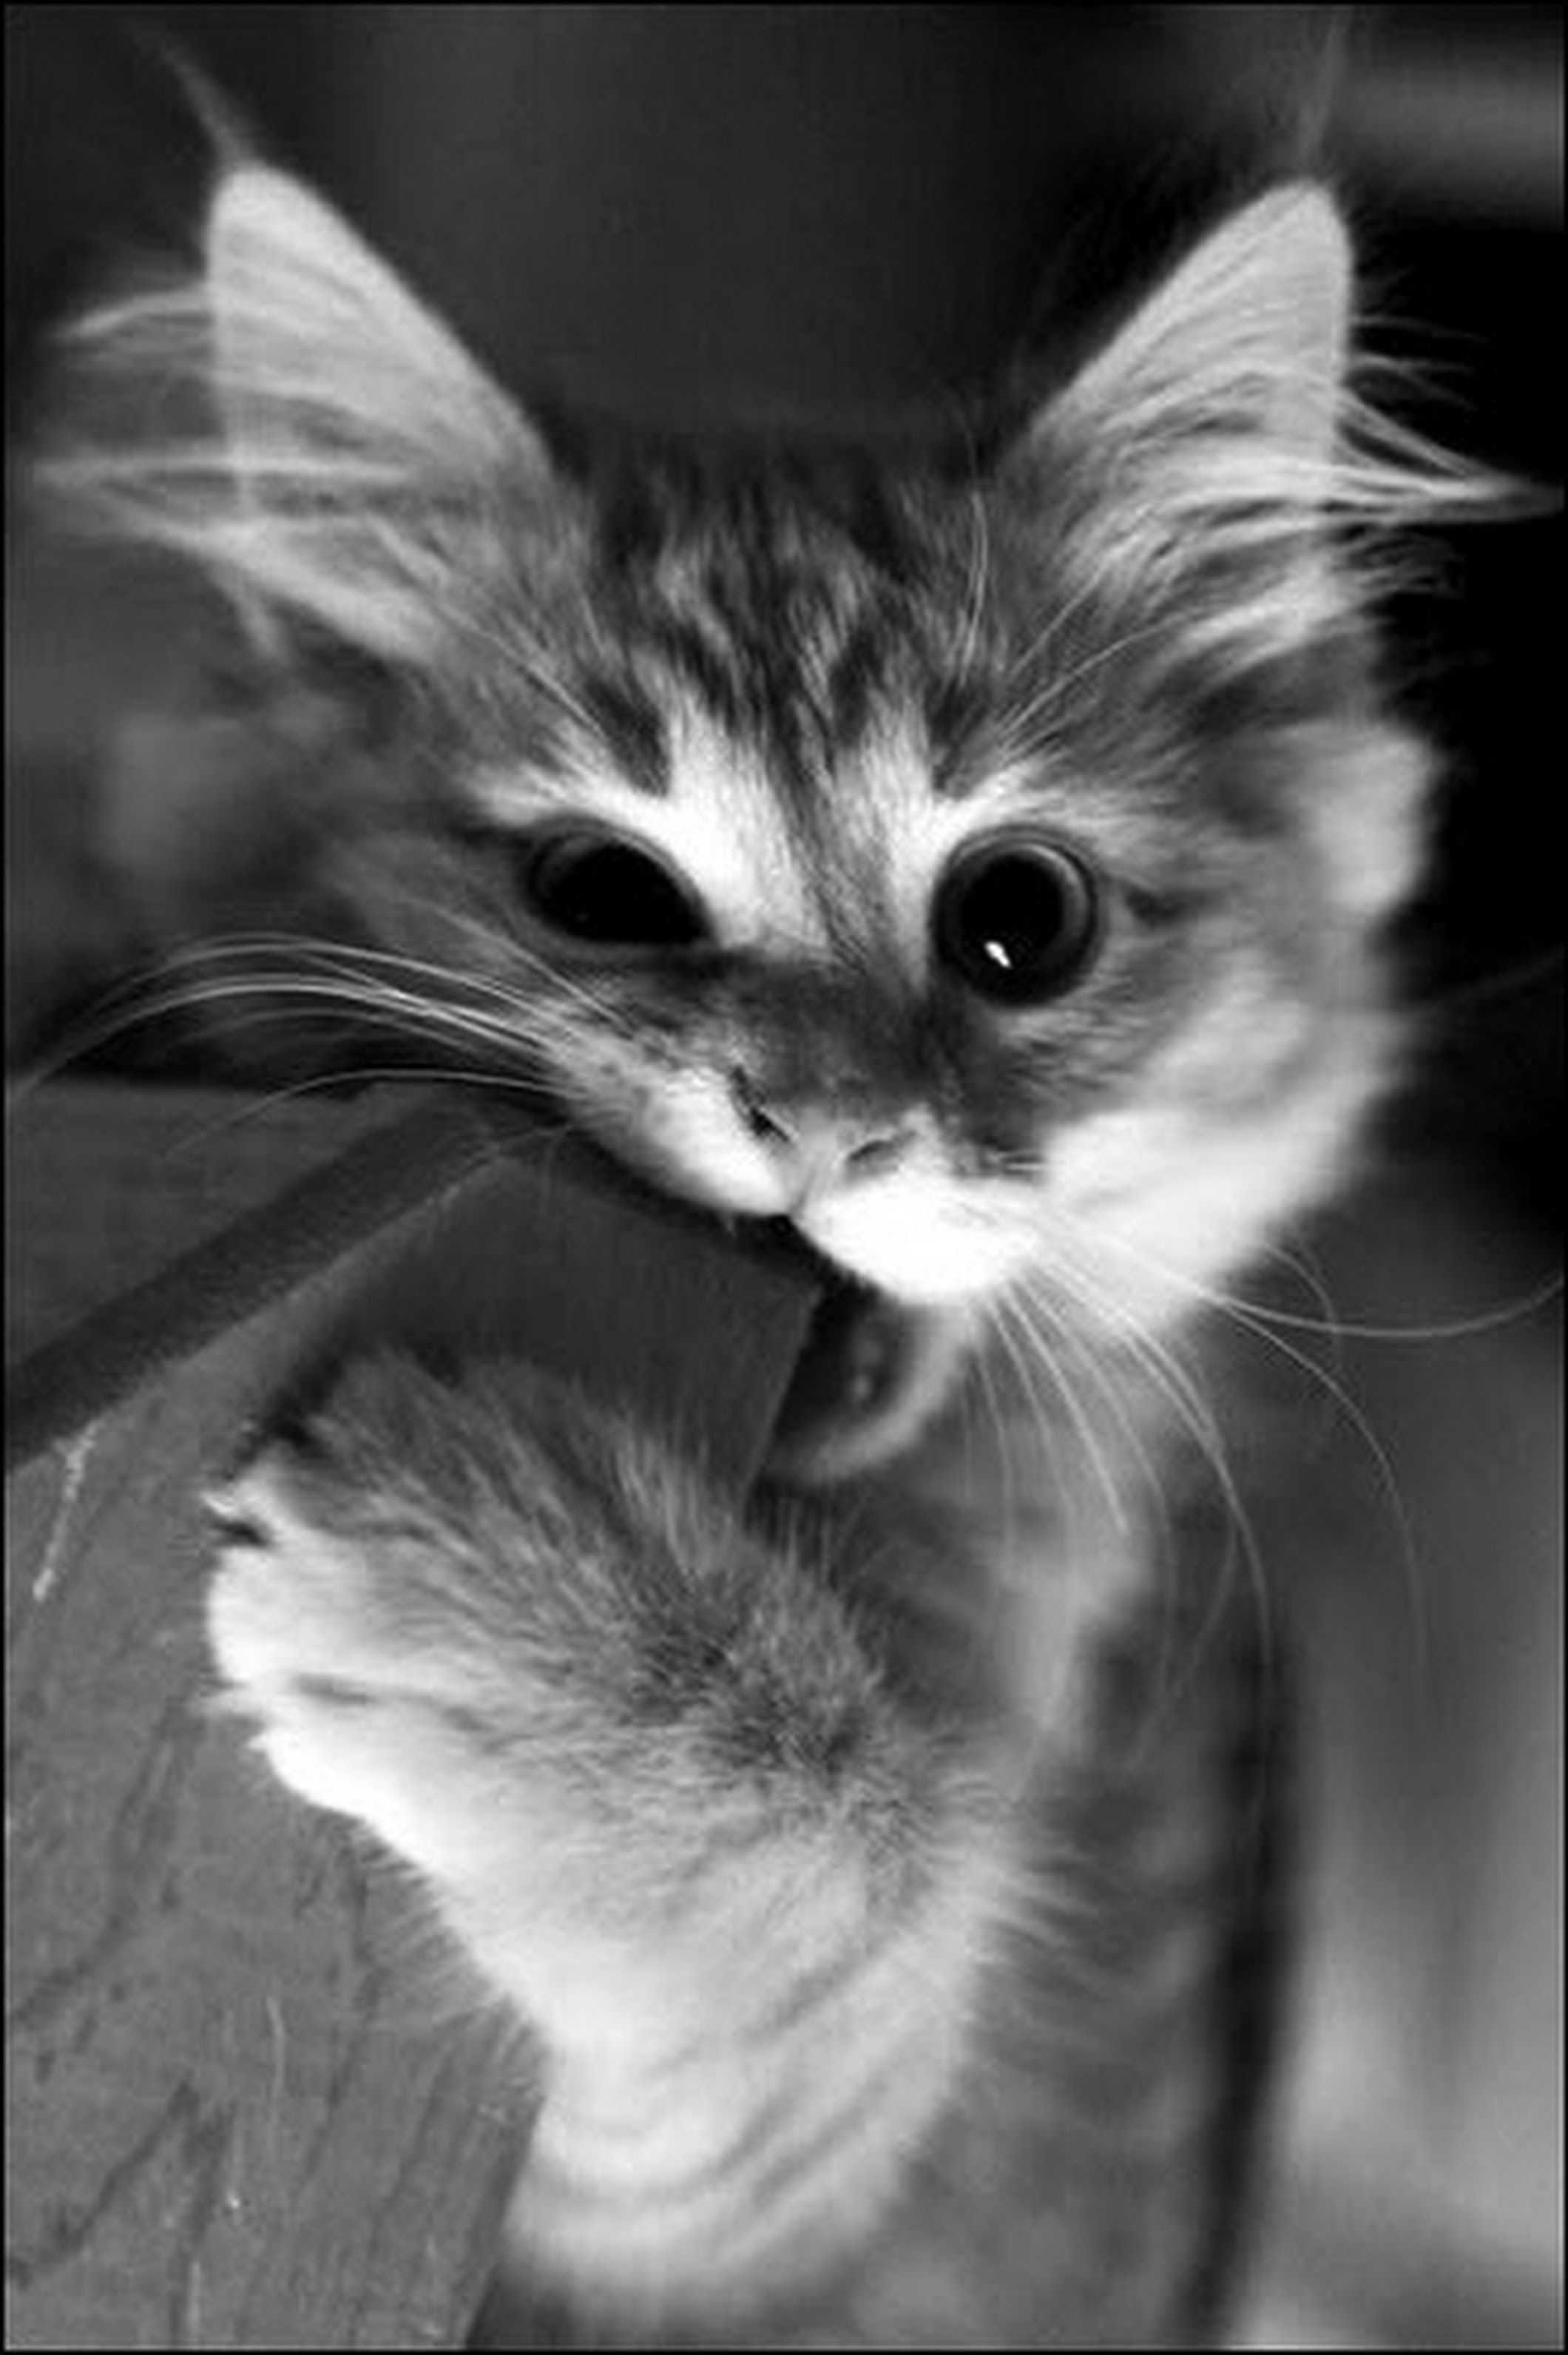 Find This Pin And More On Cute Cats And Kittens By Sharon_sewell.